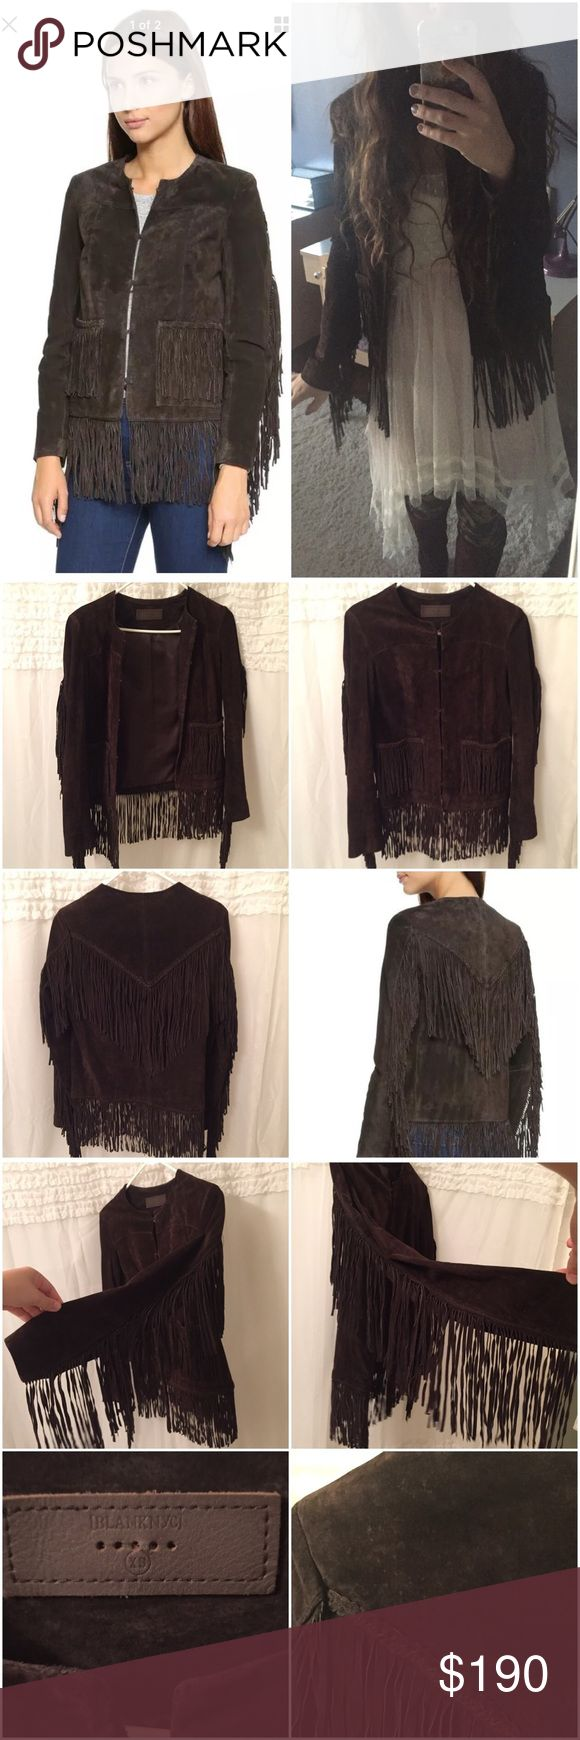 Blank NYC gypsy fringe suede jacket Suede fringe tassel jacket. Dark Chocolate brown color. Clasp closure on front. Sz Xs. Brand is blank nyc. Looks similar to the suede jackets sold at free people. Not from free people tagged b/c there's no blanknyc under brands. Purchased at south moon under last year. Some small spots on the shoulder, see photos, may be able to use suede cleaner to get them out. Worn once. Paid over $200. No trades Free People Jackets & Coats